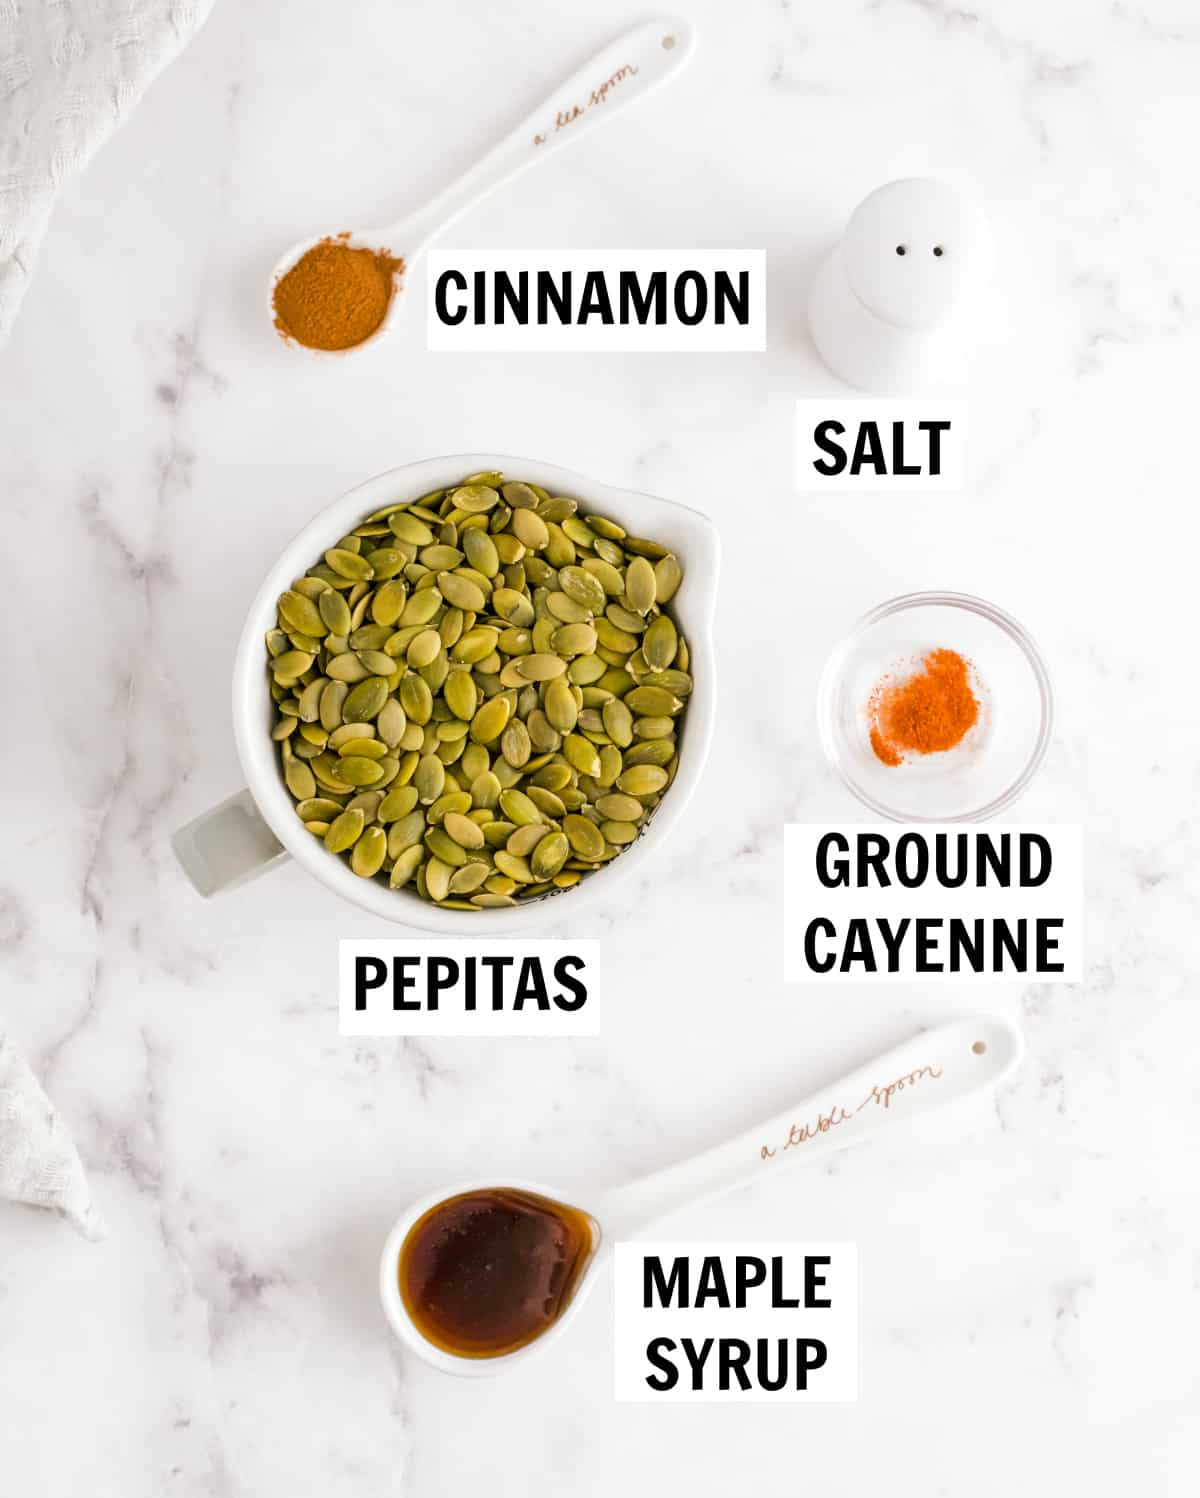 ingredients for spiced pepitas